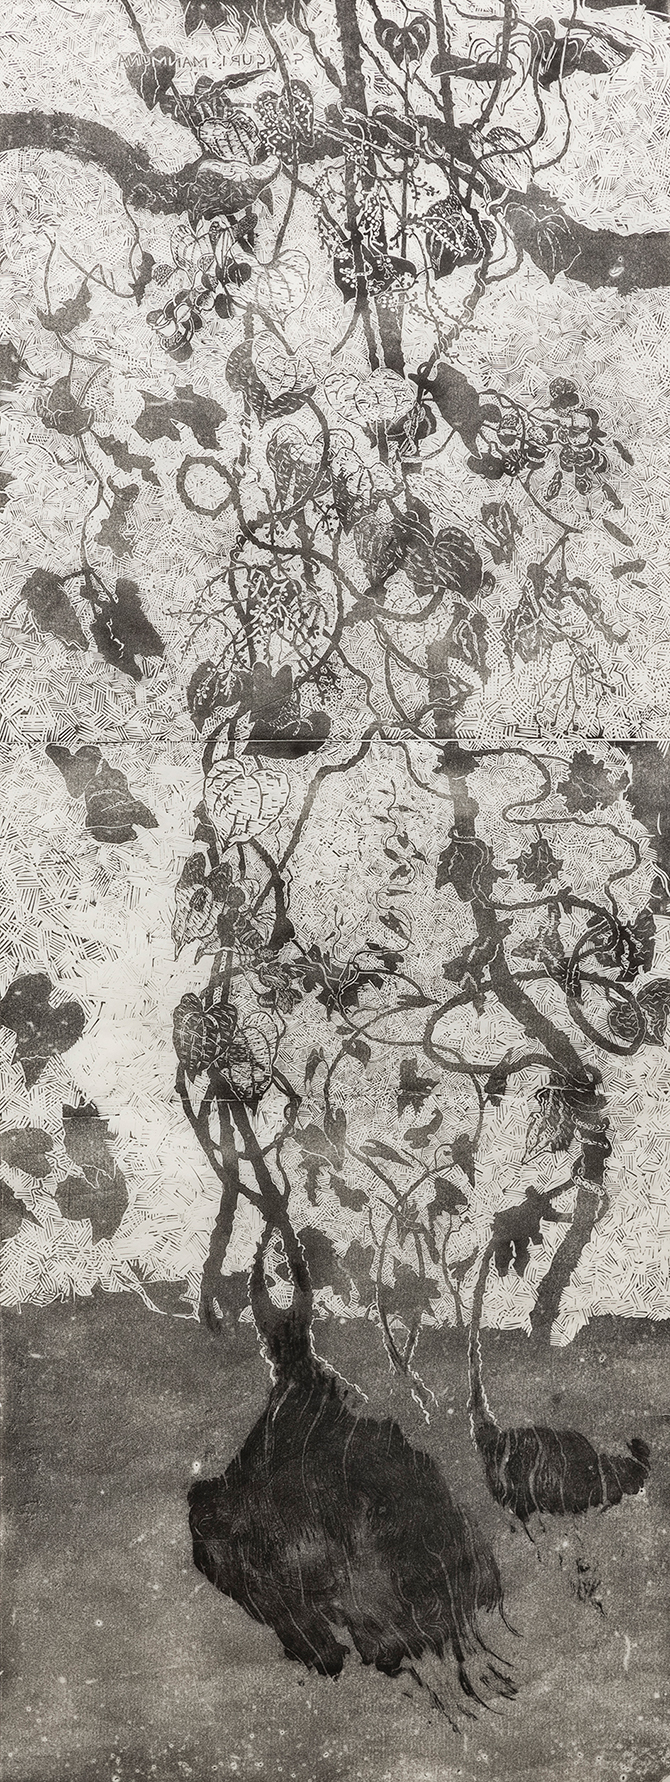 John Wolseley, 'Ganguri vine and yam' 2015, linocut and woodcut, edition of 40.